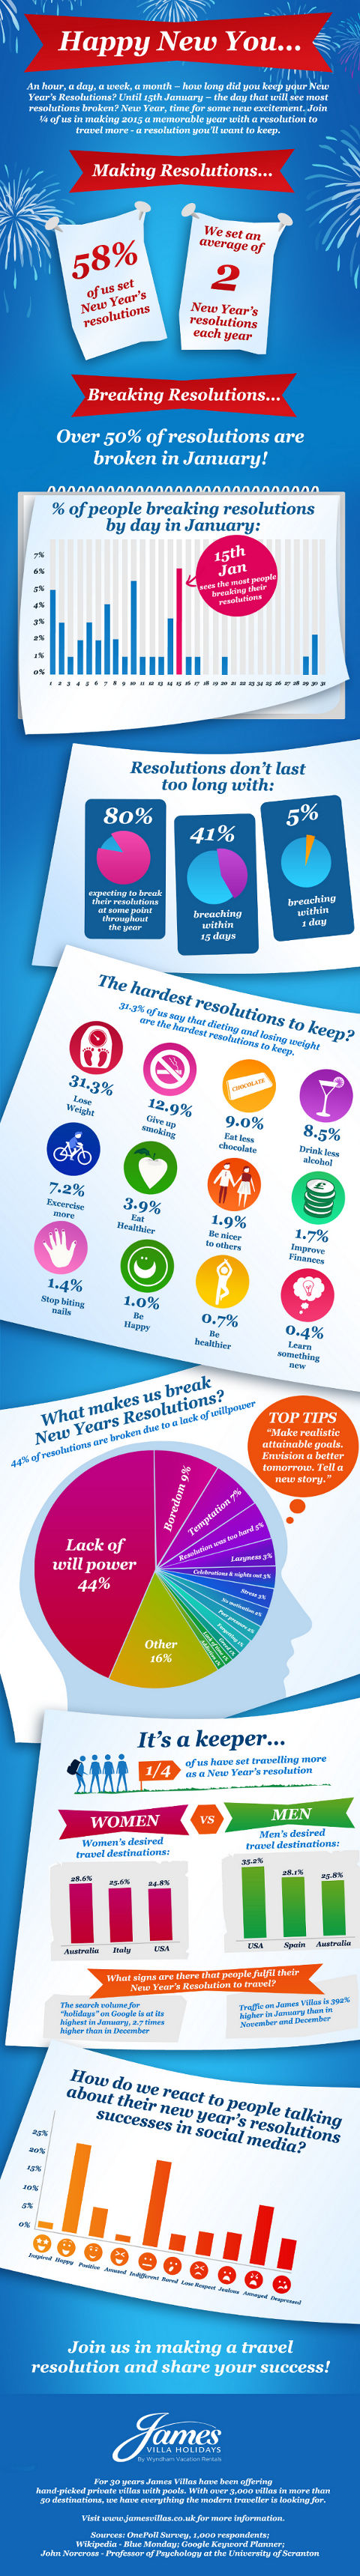 Infographic-Happy-New-You-James-Villas-480LR